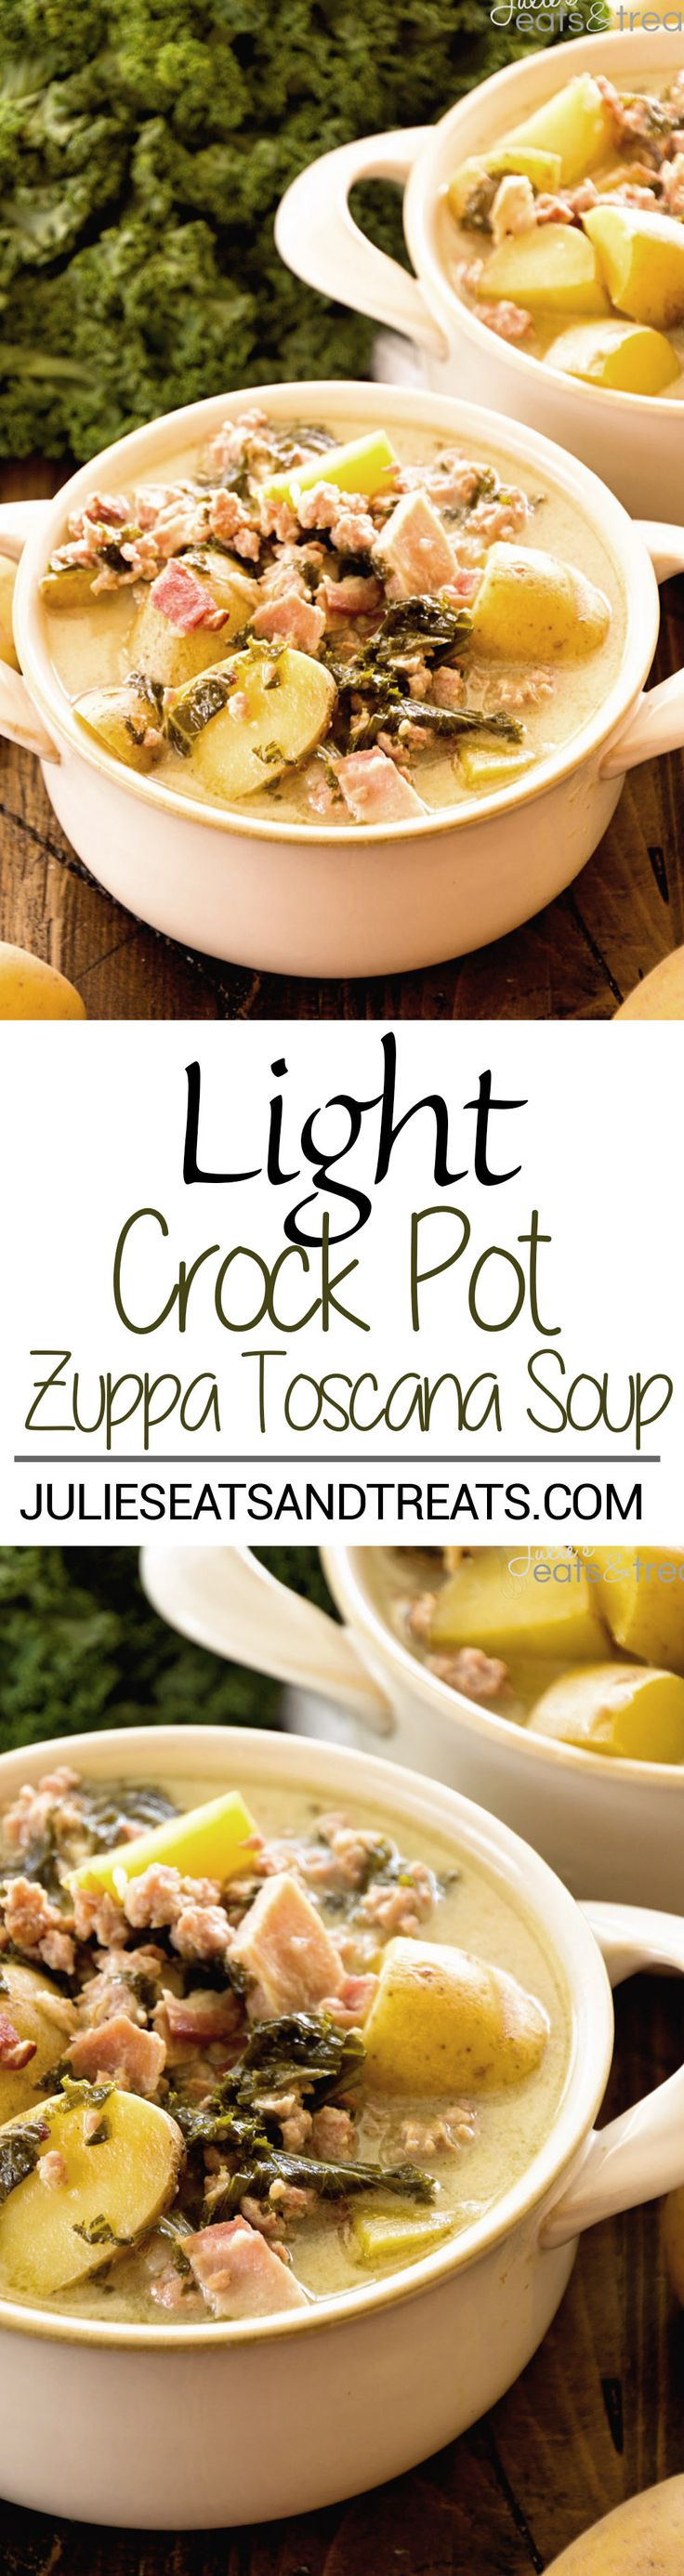 Check Out Light Crock Pot Zuppa Toscana It 39 S So Easy To